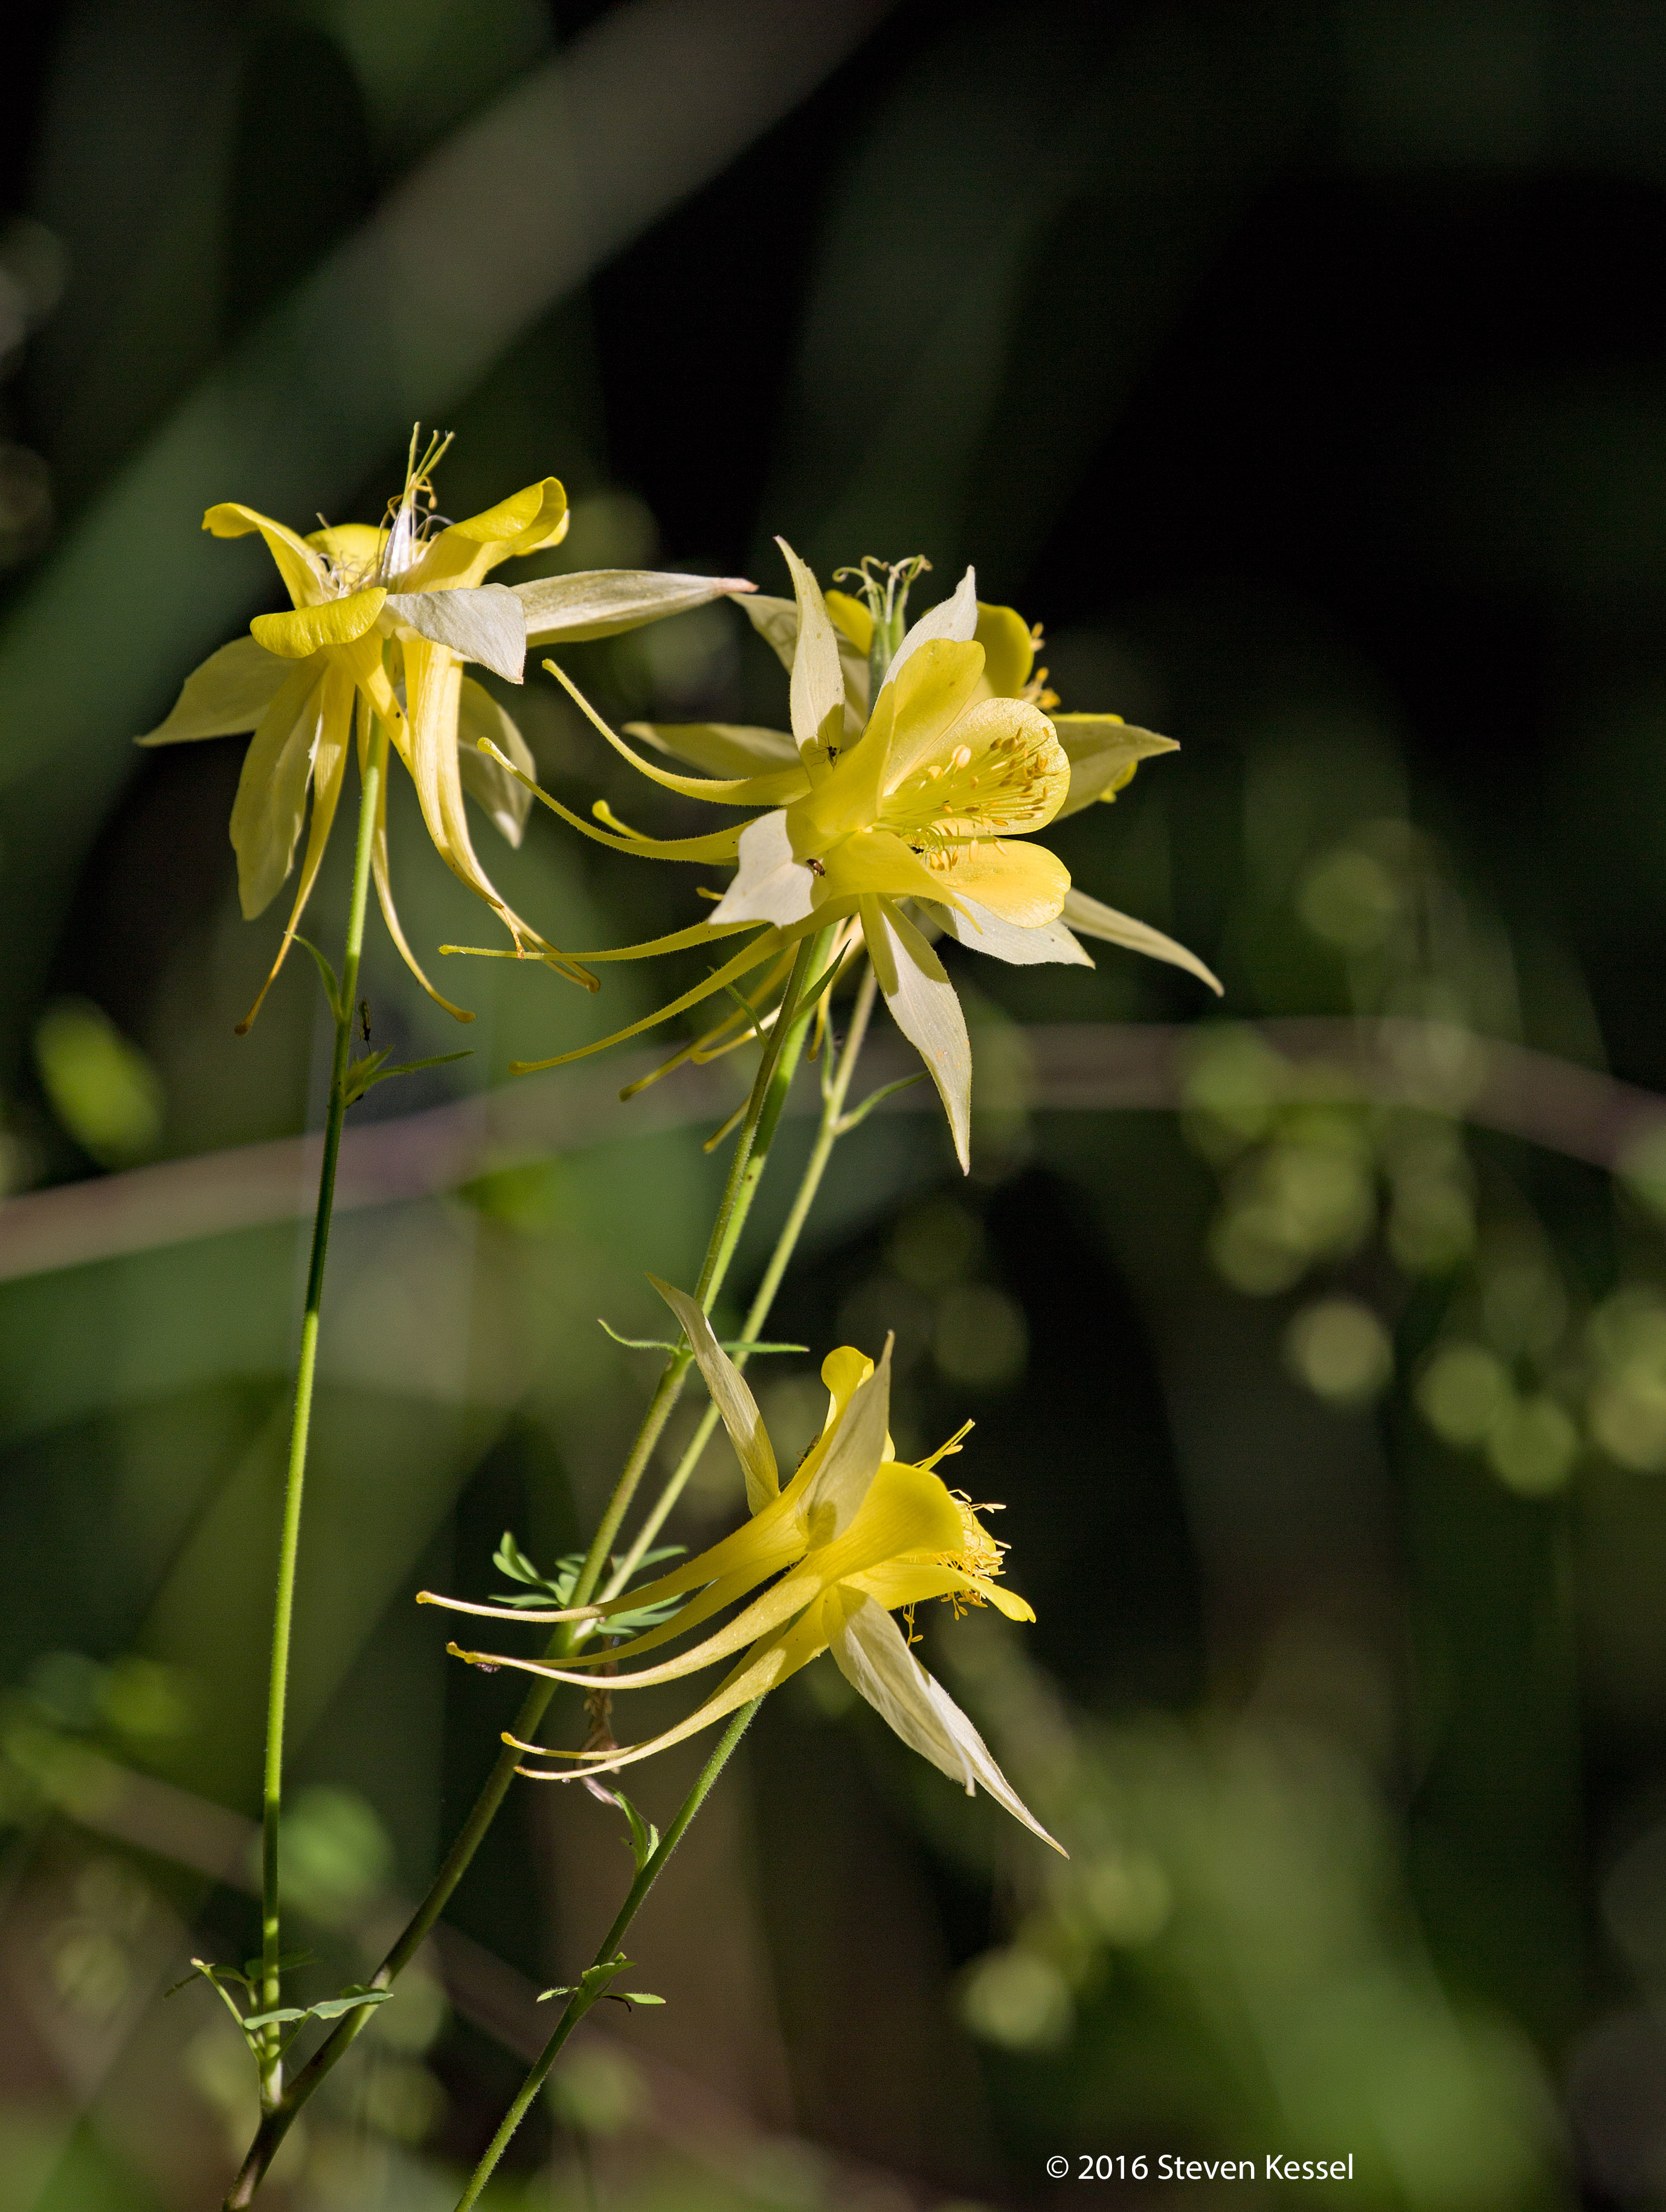 The wildlife of mt lemmon columbine sonoran images columbine is a species of non native plant non native in the sense that it first arrived in north america sometime between about 10000 and about 40000 izmirmasajfo